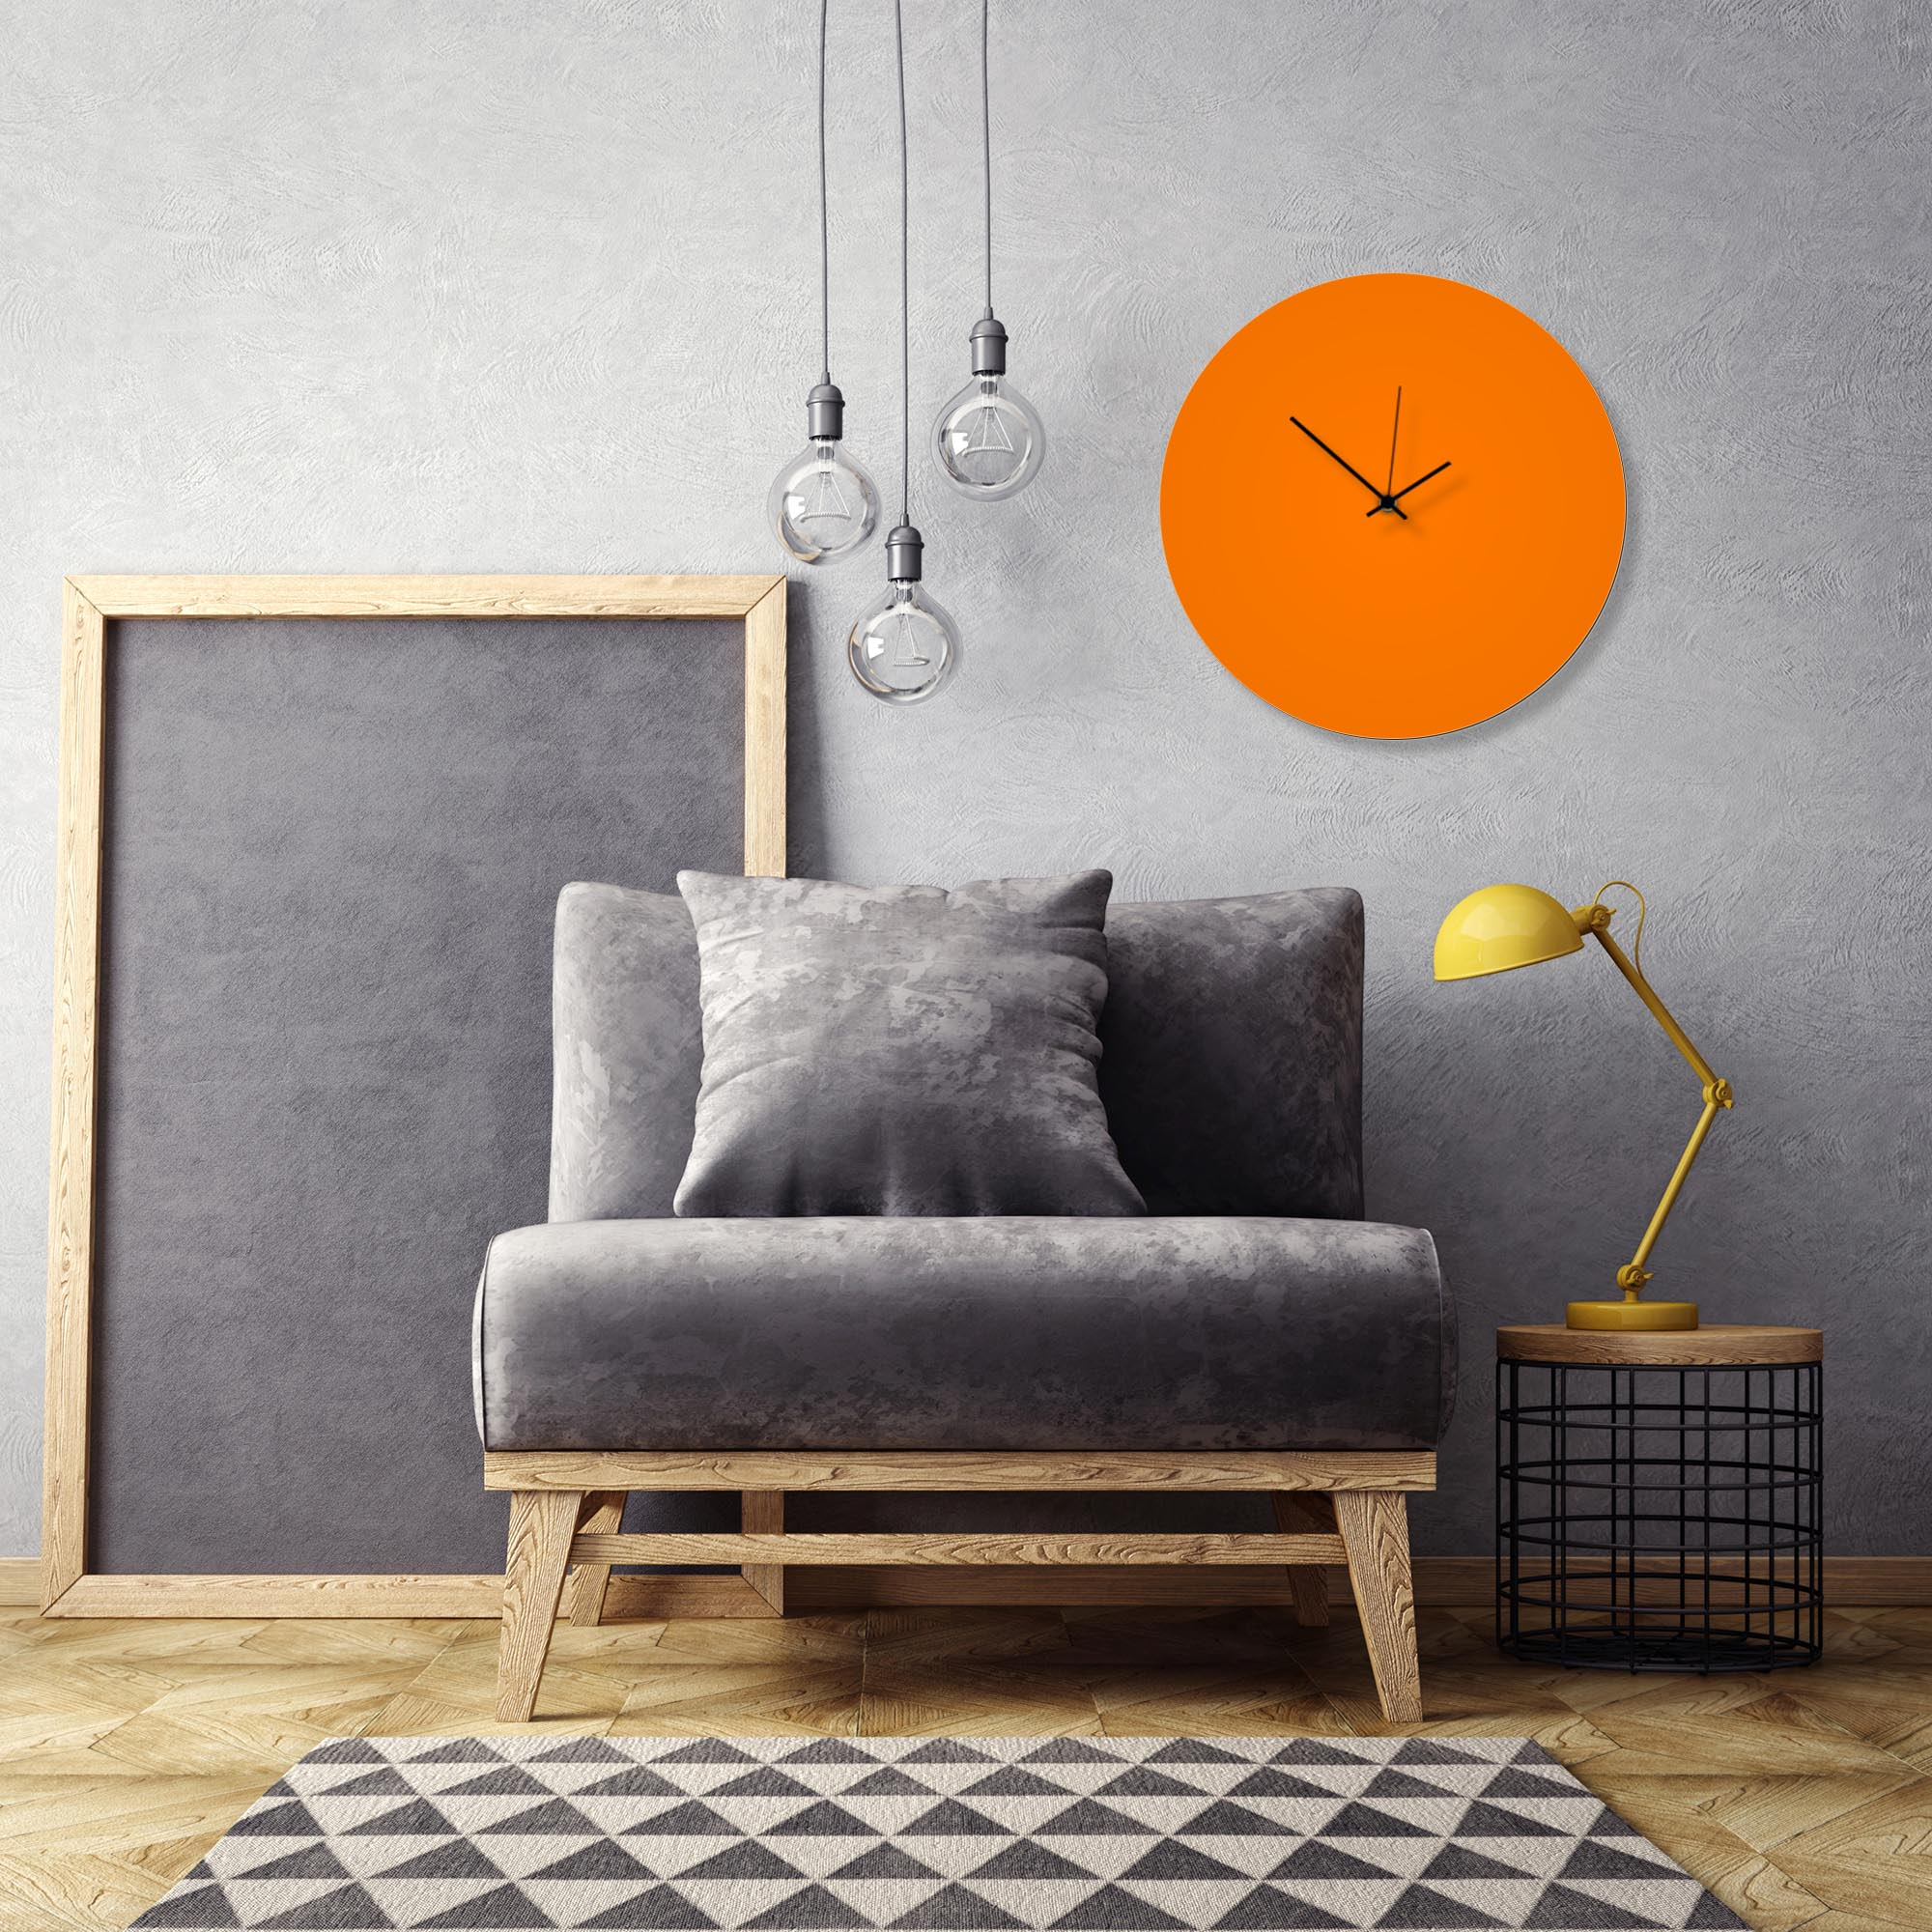 Orangeout Black Circle Clock Large by Adam Schwoeppe Contemporary Clock on Aluminum Polymetal - Alternate View 1